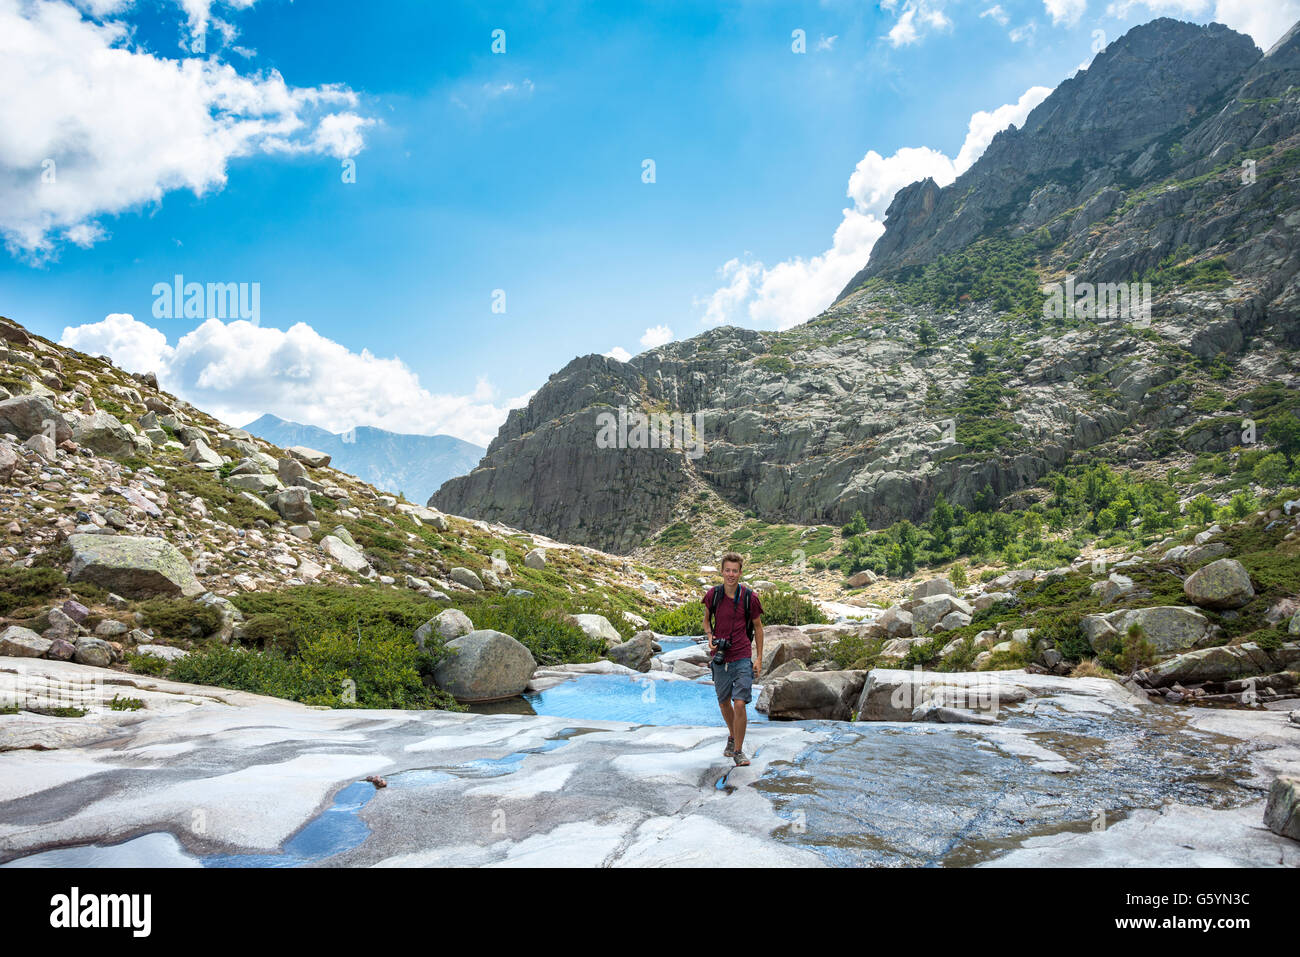 Young man hiking by the river Golo in the mountains, Nature Park of Corsica, Parc naturel régional de Corse, - Stock Image